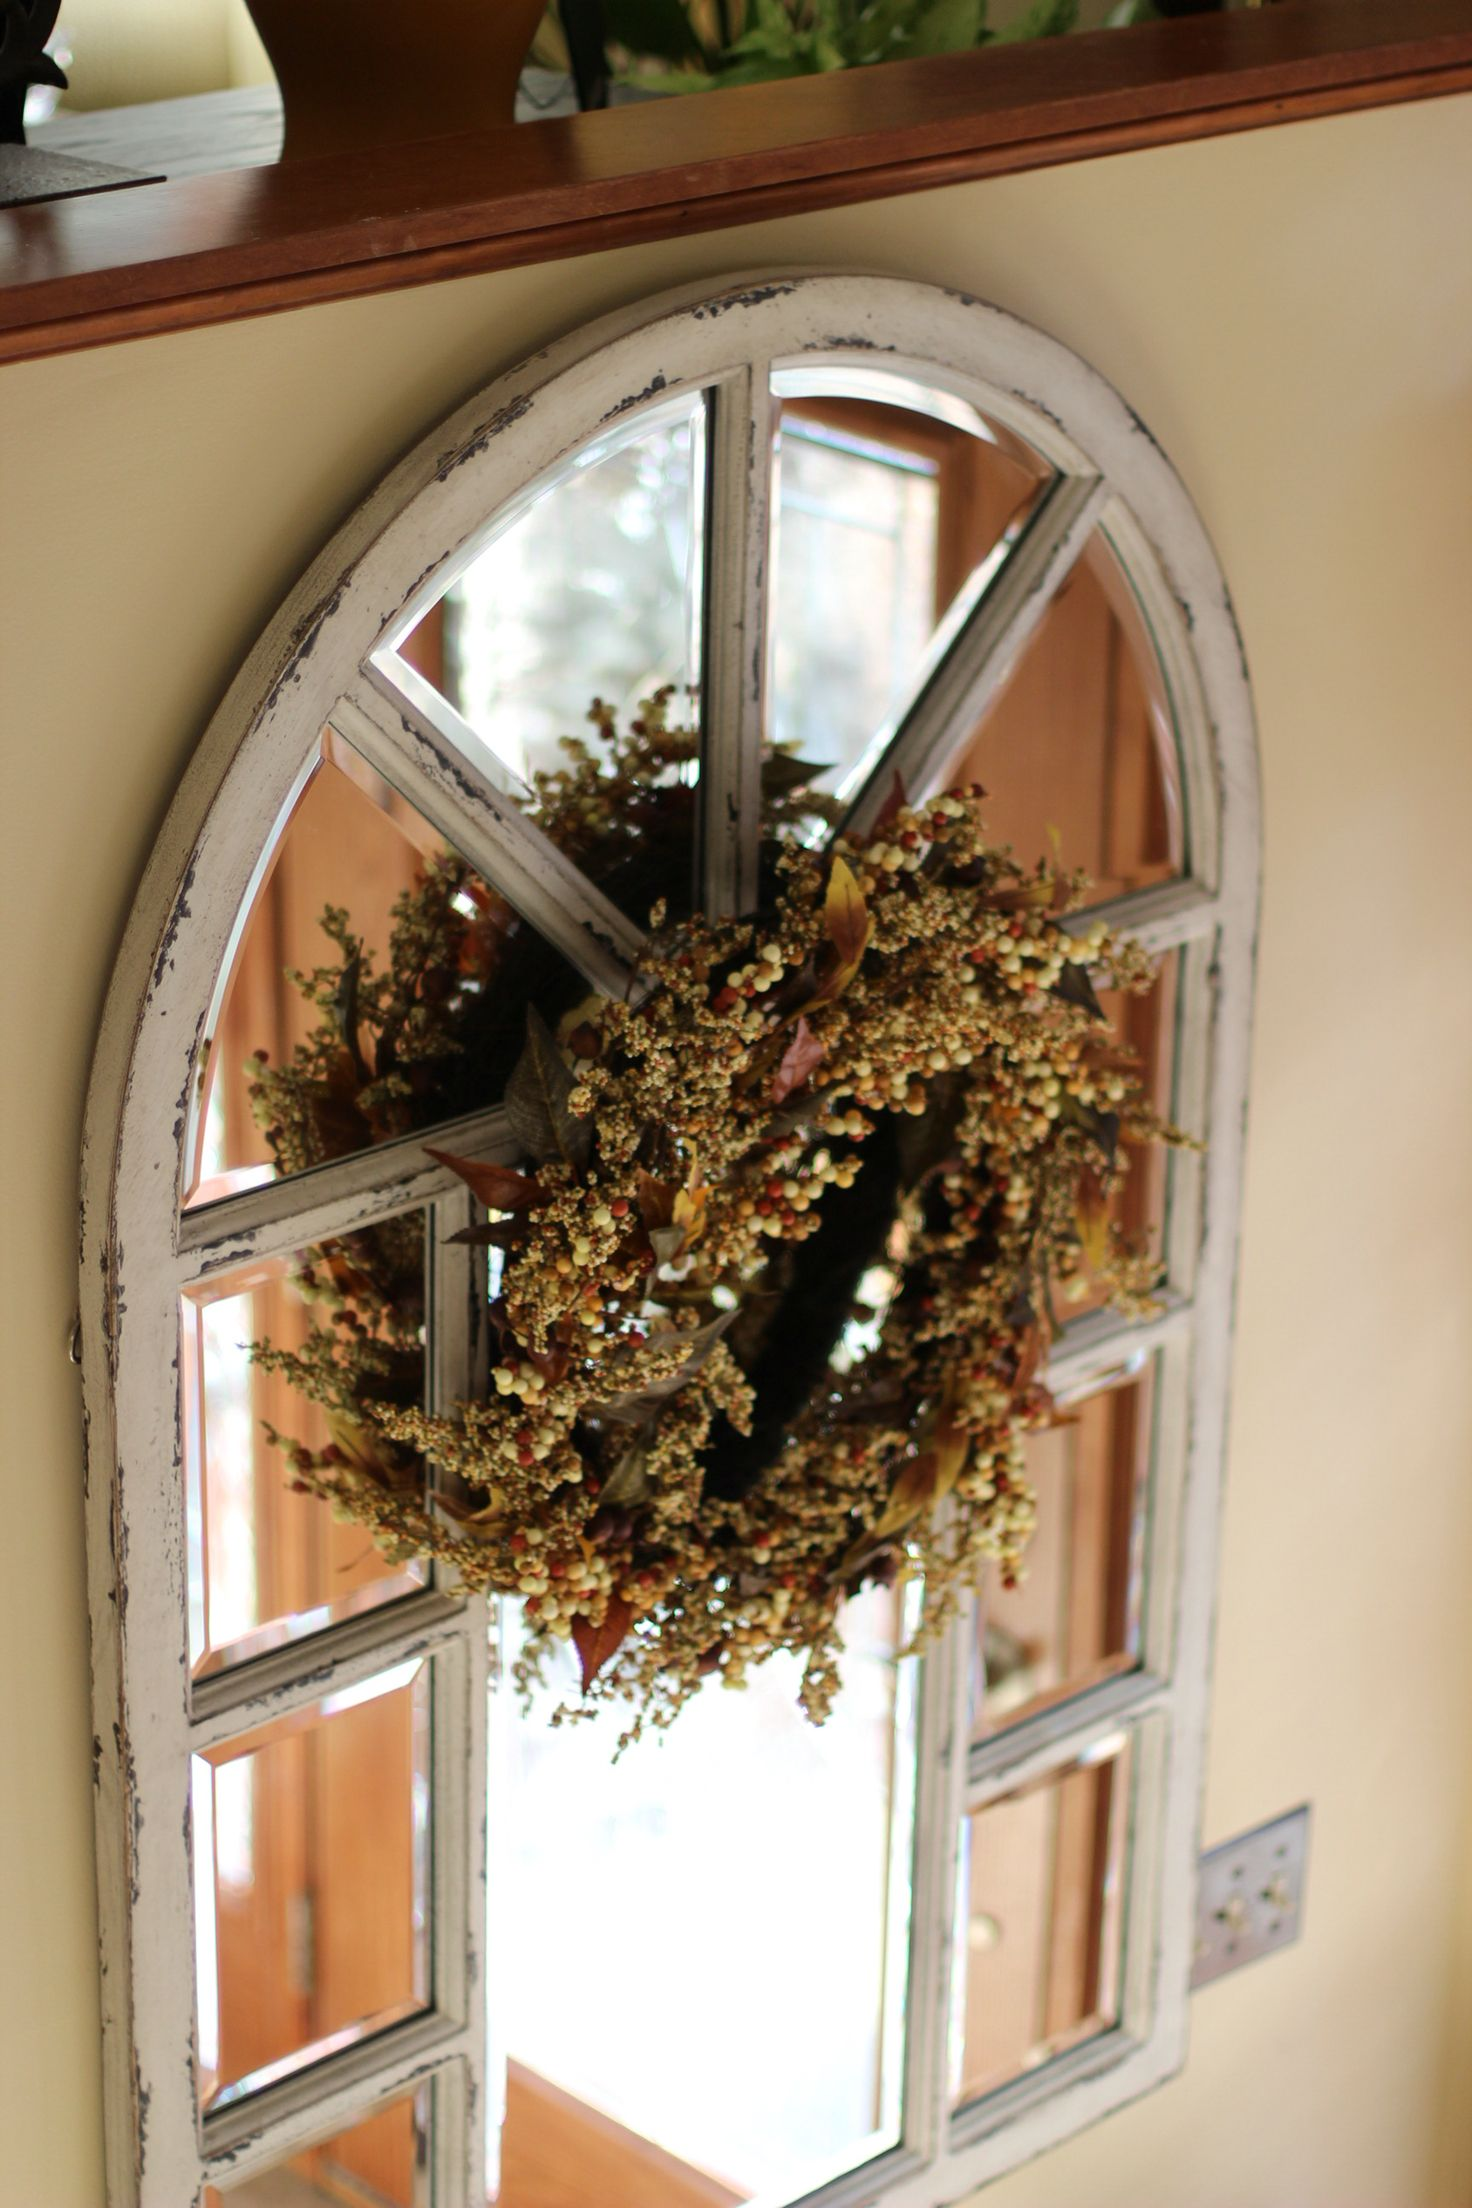 Window Frame Mirror From Ethan Allen With Fall Wreath In